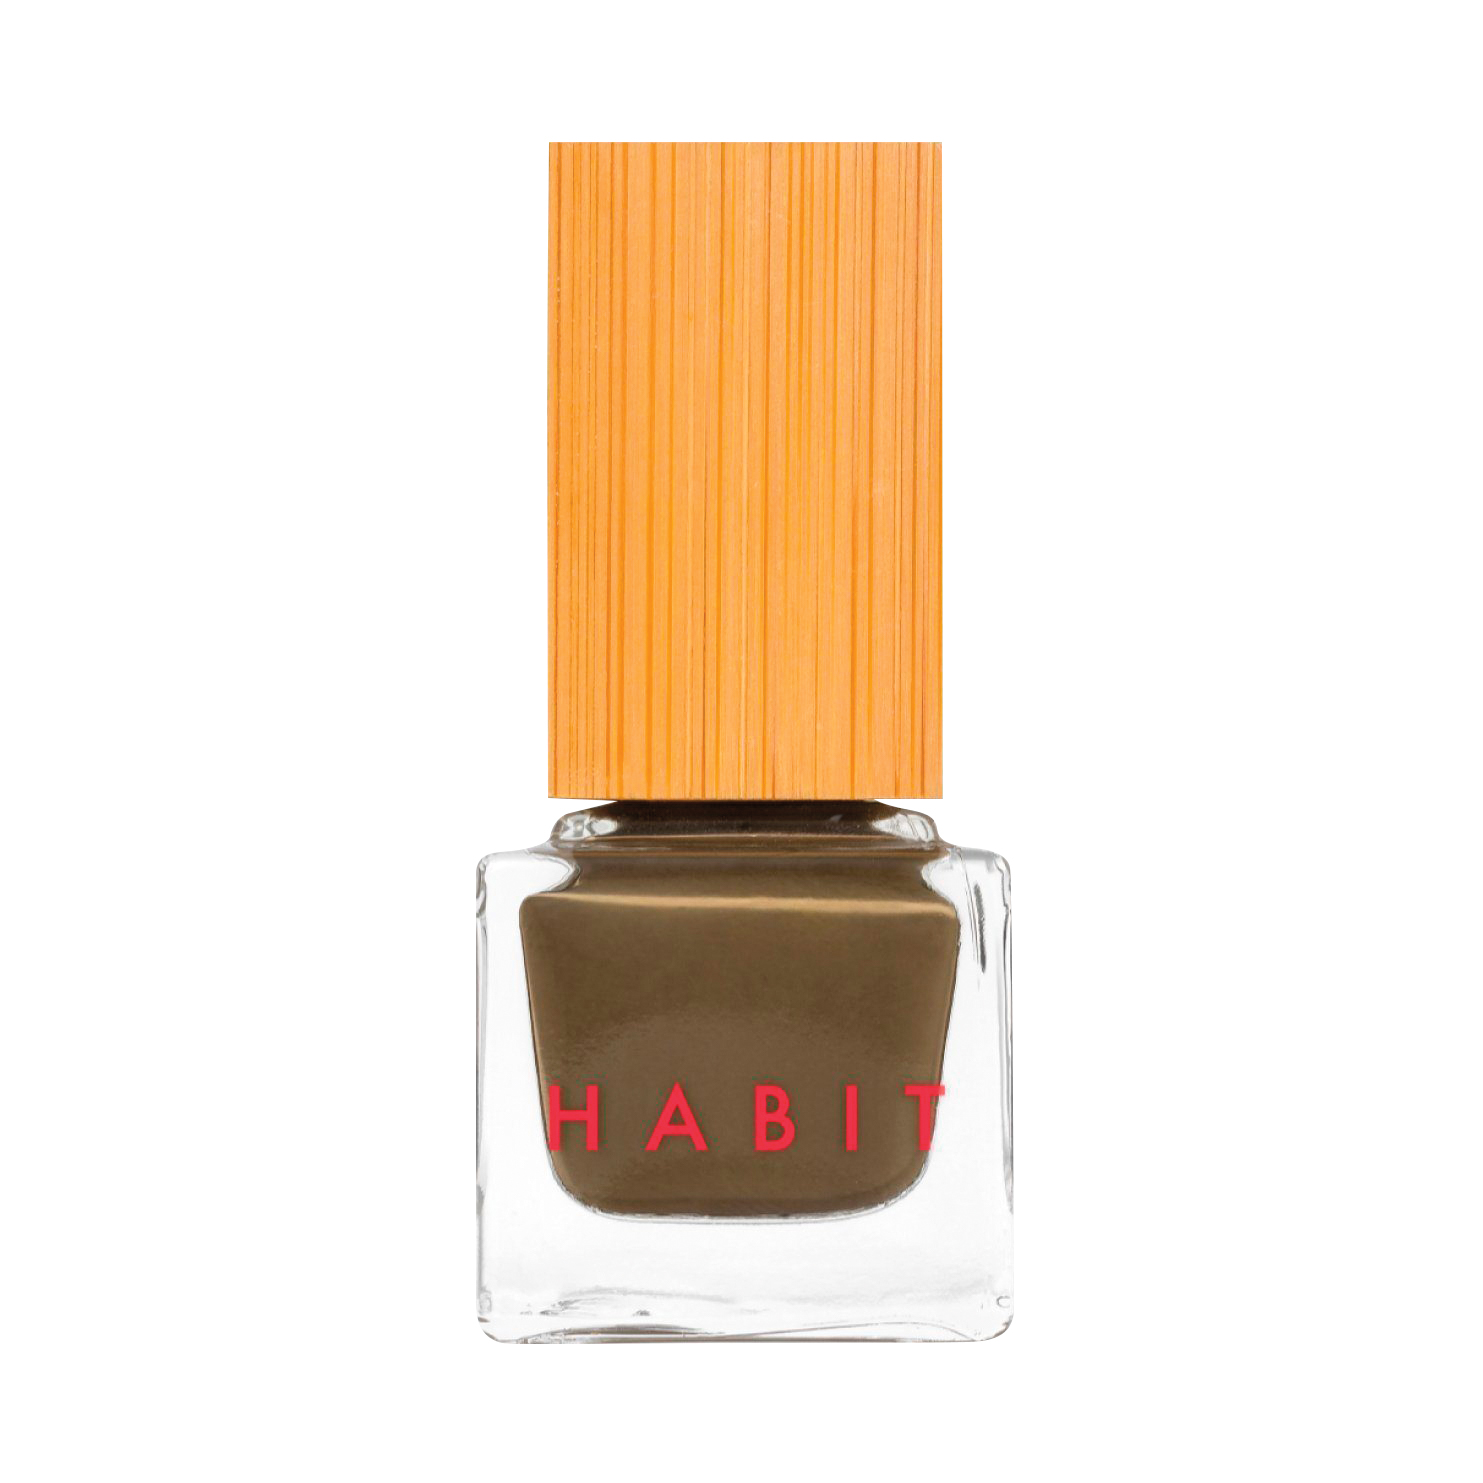 brown nailpolish in gold top bottle